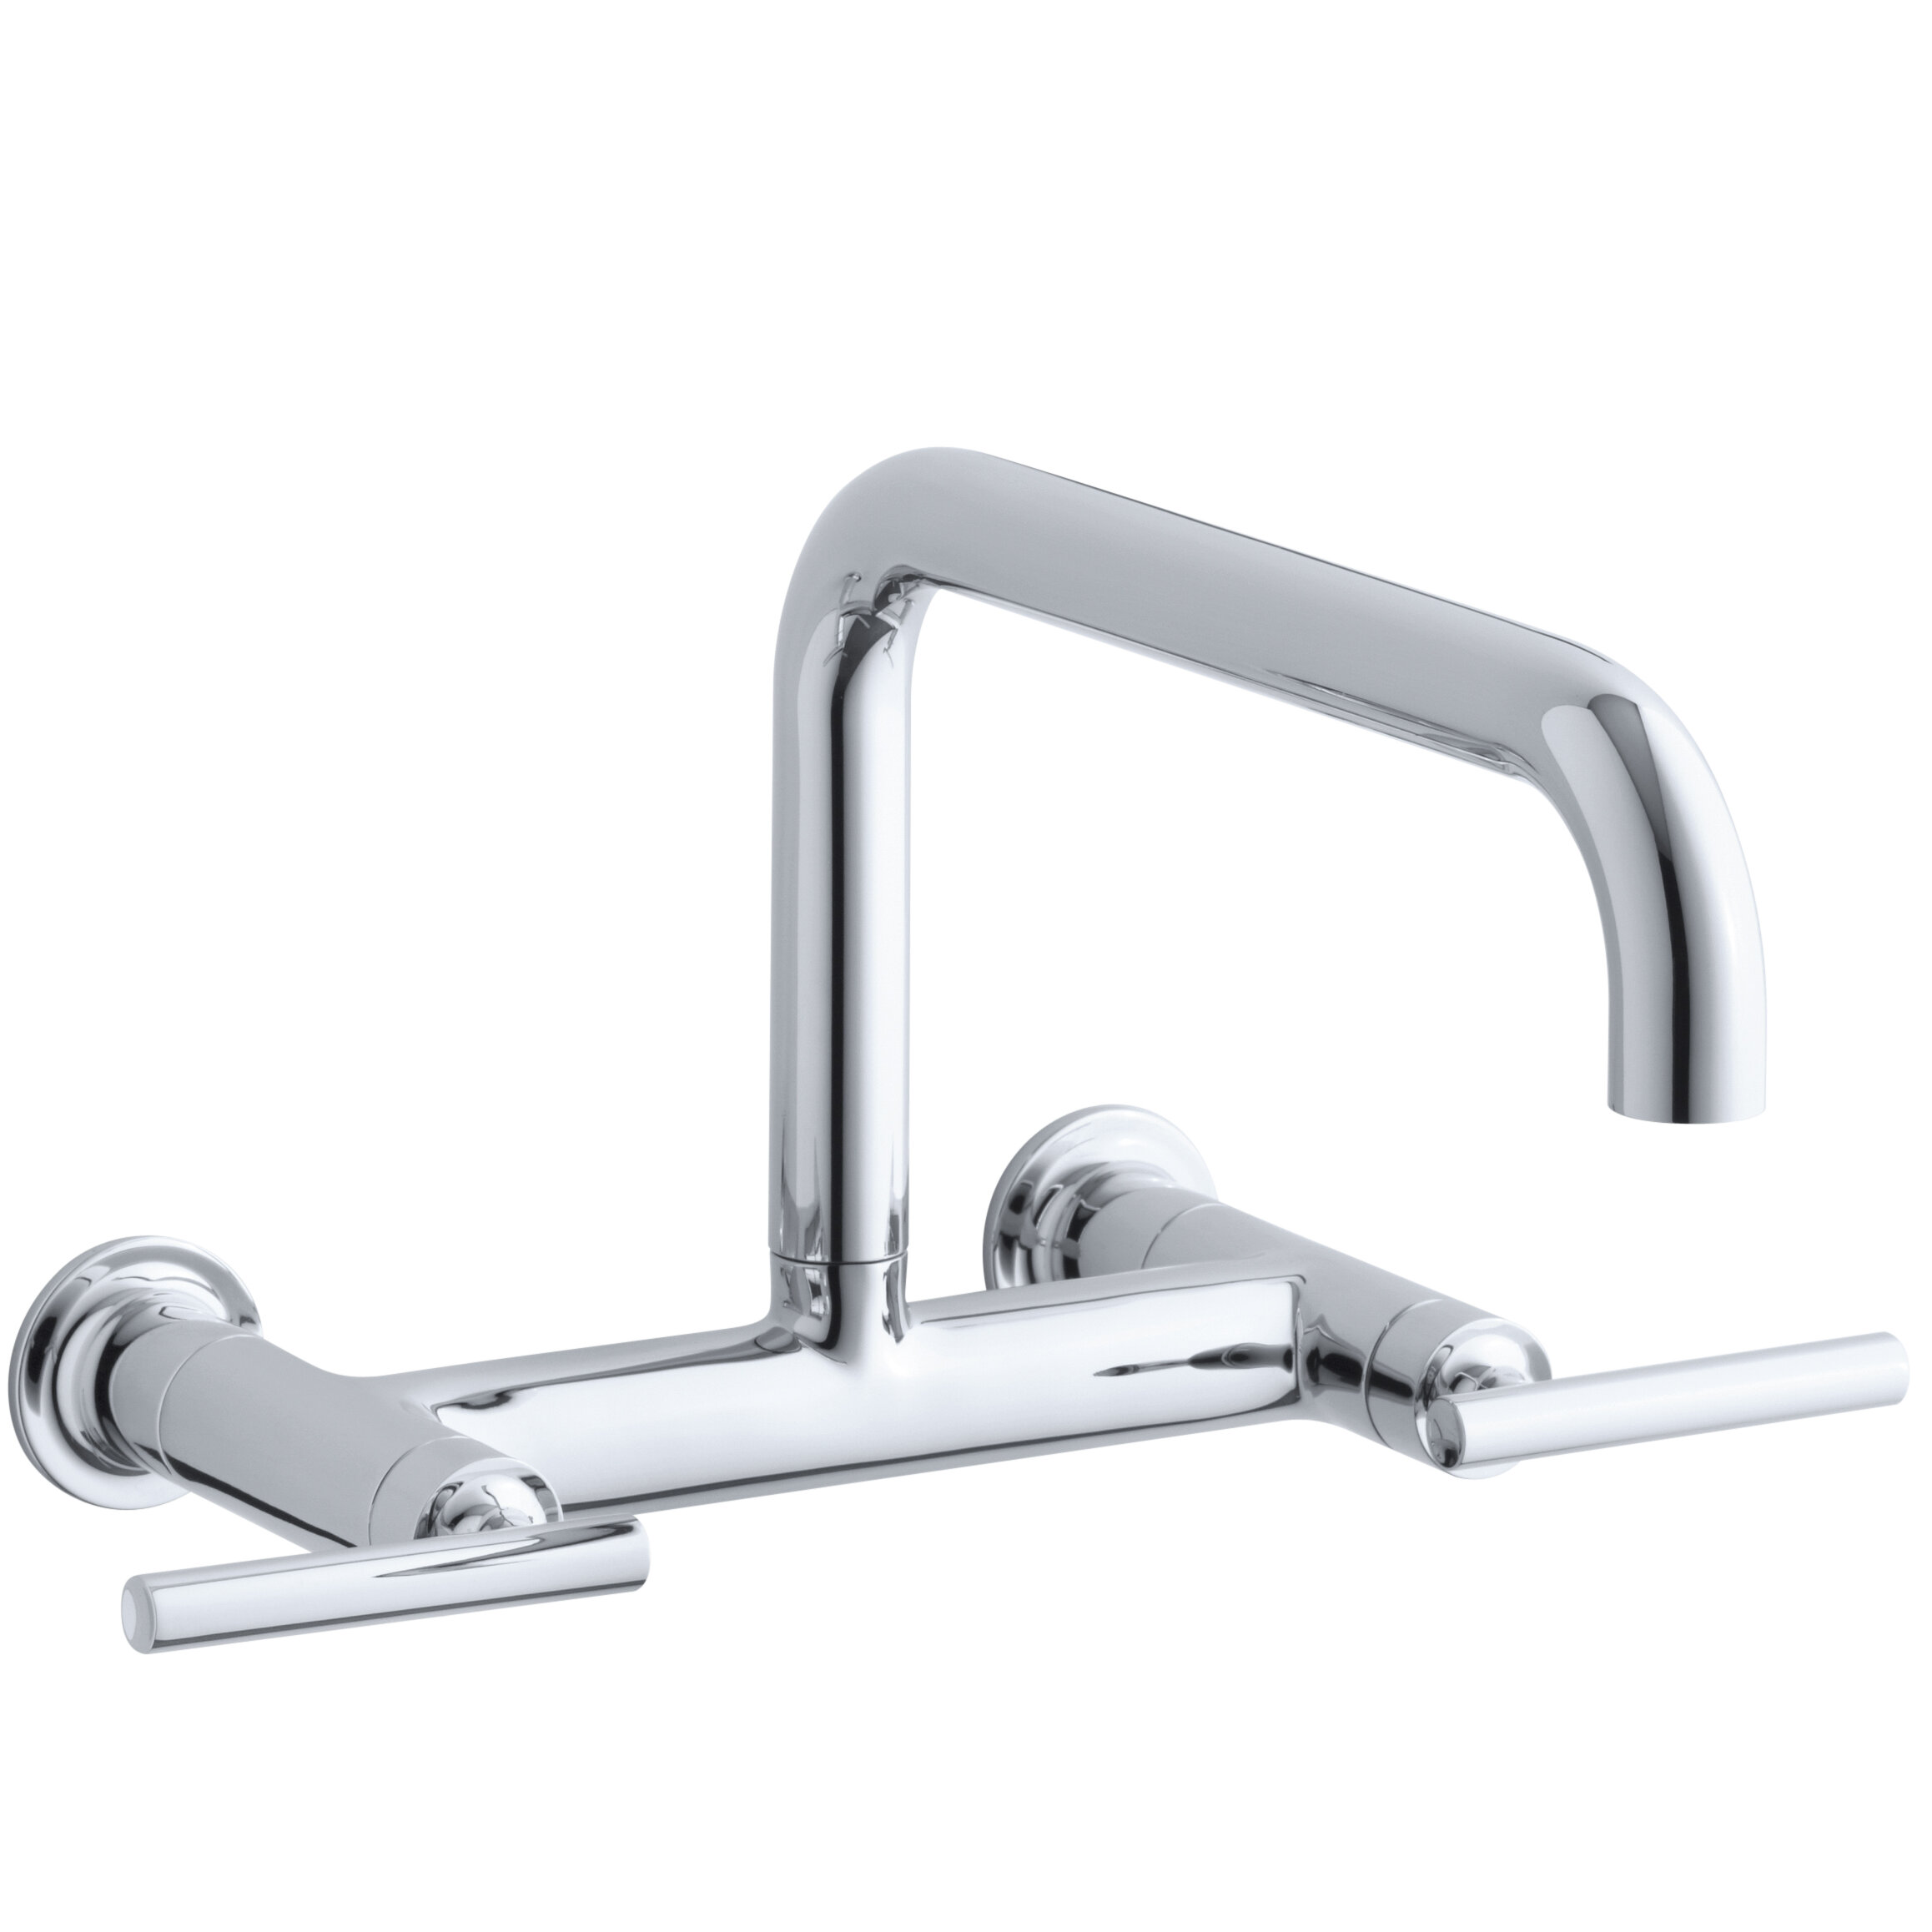 kitchen chrome purist asp lg pullout faucets cp spray k polished kohler faucet detail